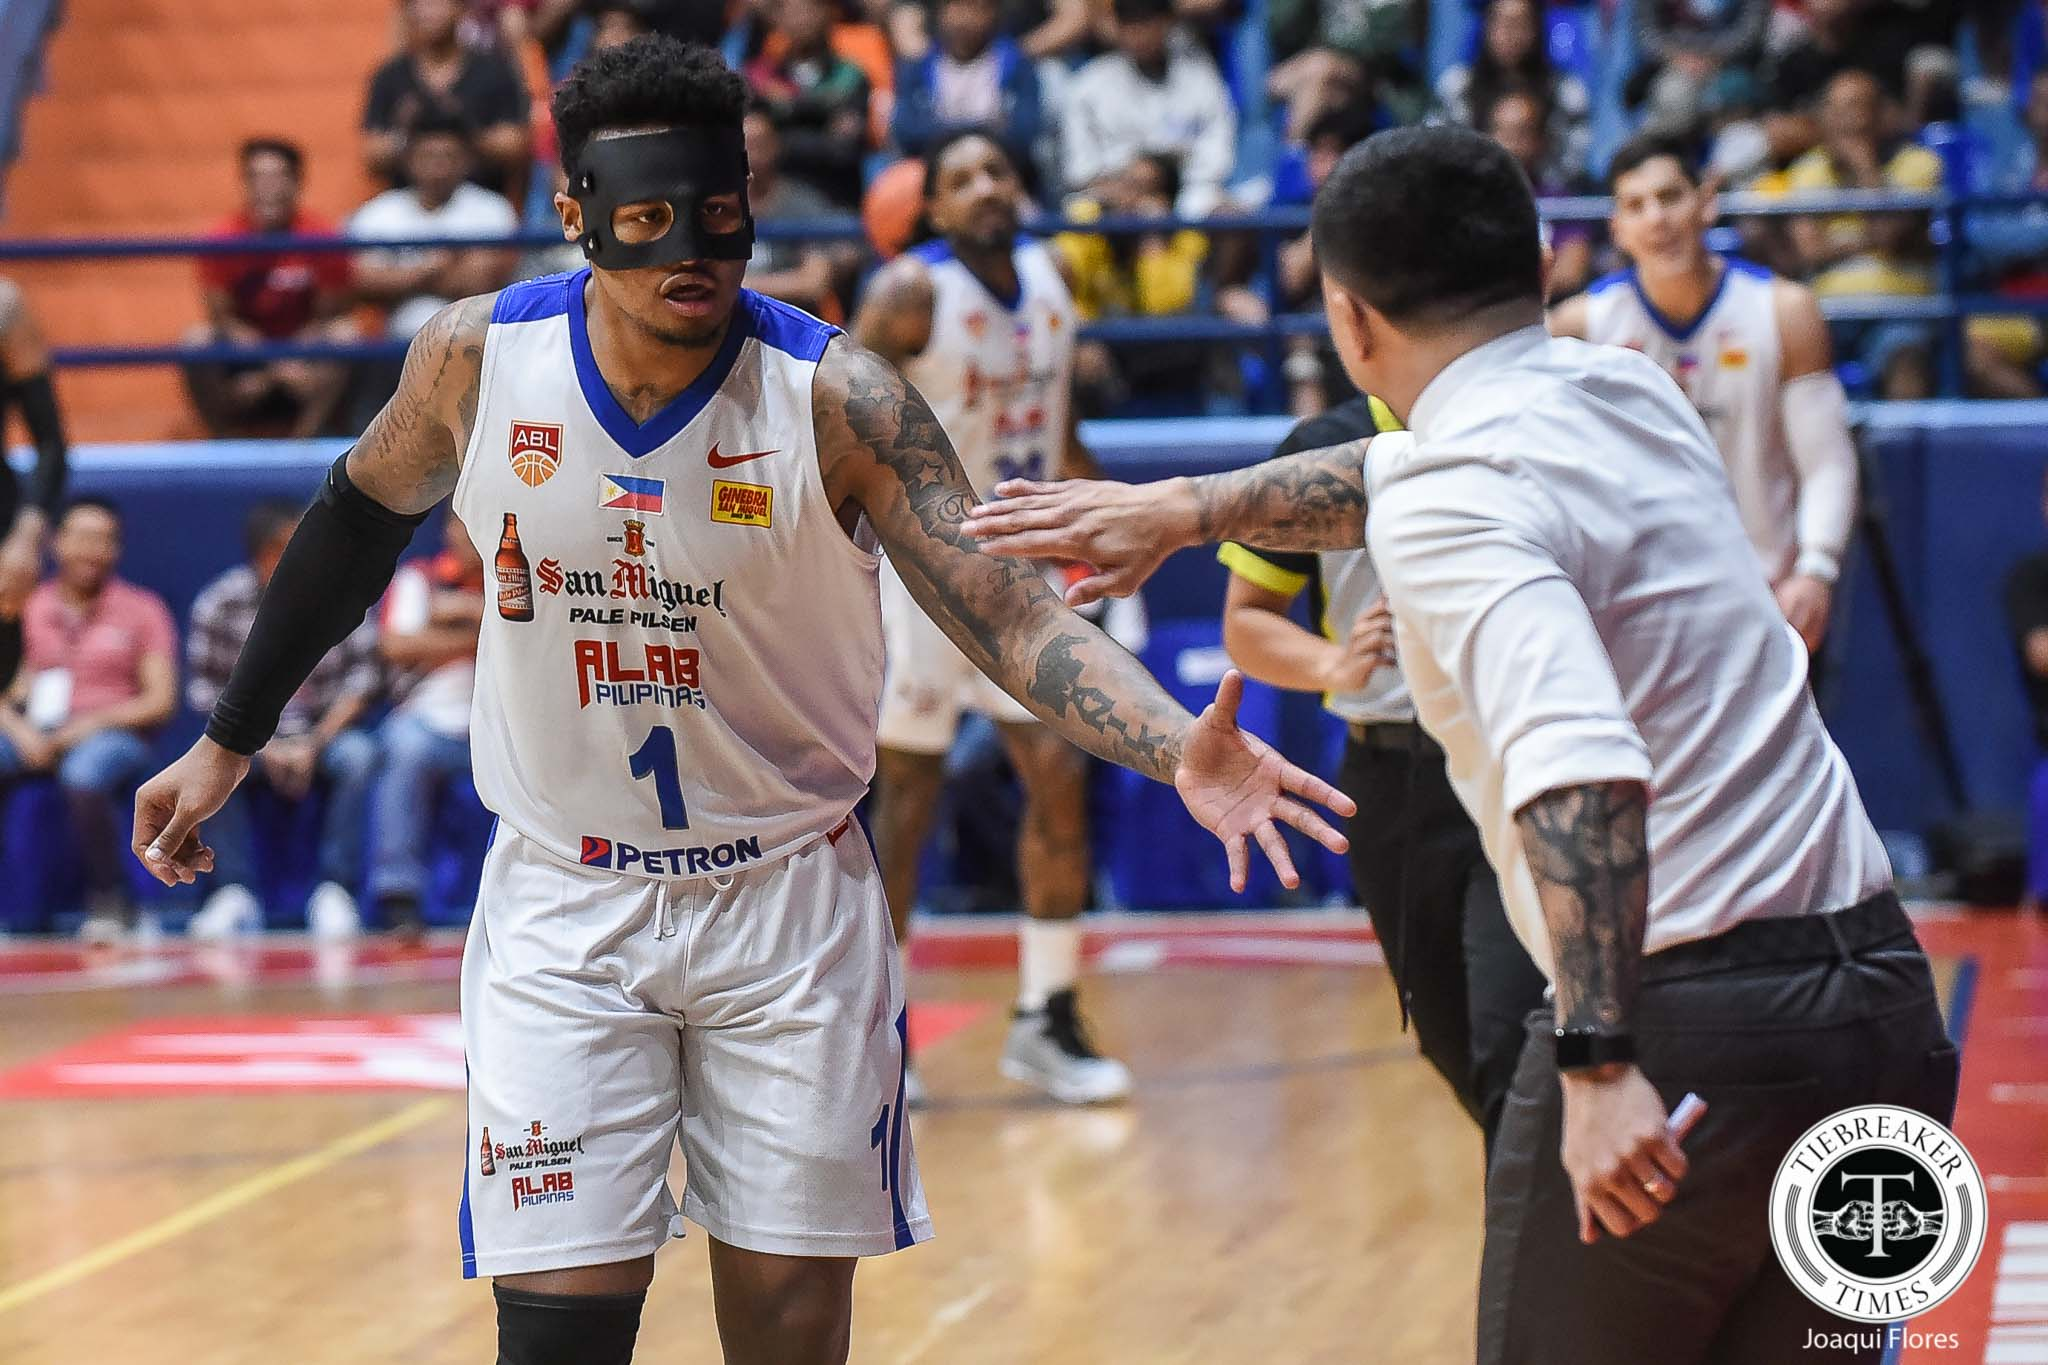 Tiebreaker Times Ray Parks admits being uncomfortable with mask, still tallies double-double ABL Alab Pilipinas Baseball News  Bobby Ray Parks Jr. 2018-19 ABL Season